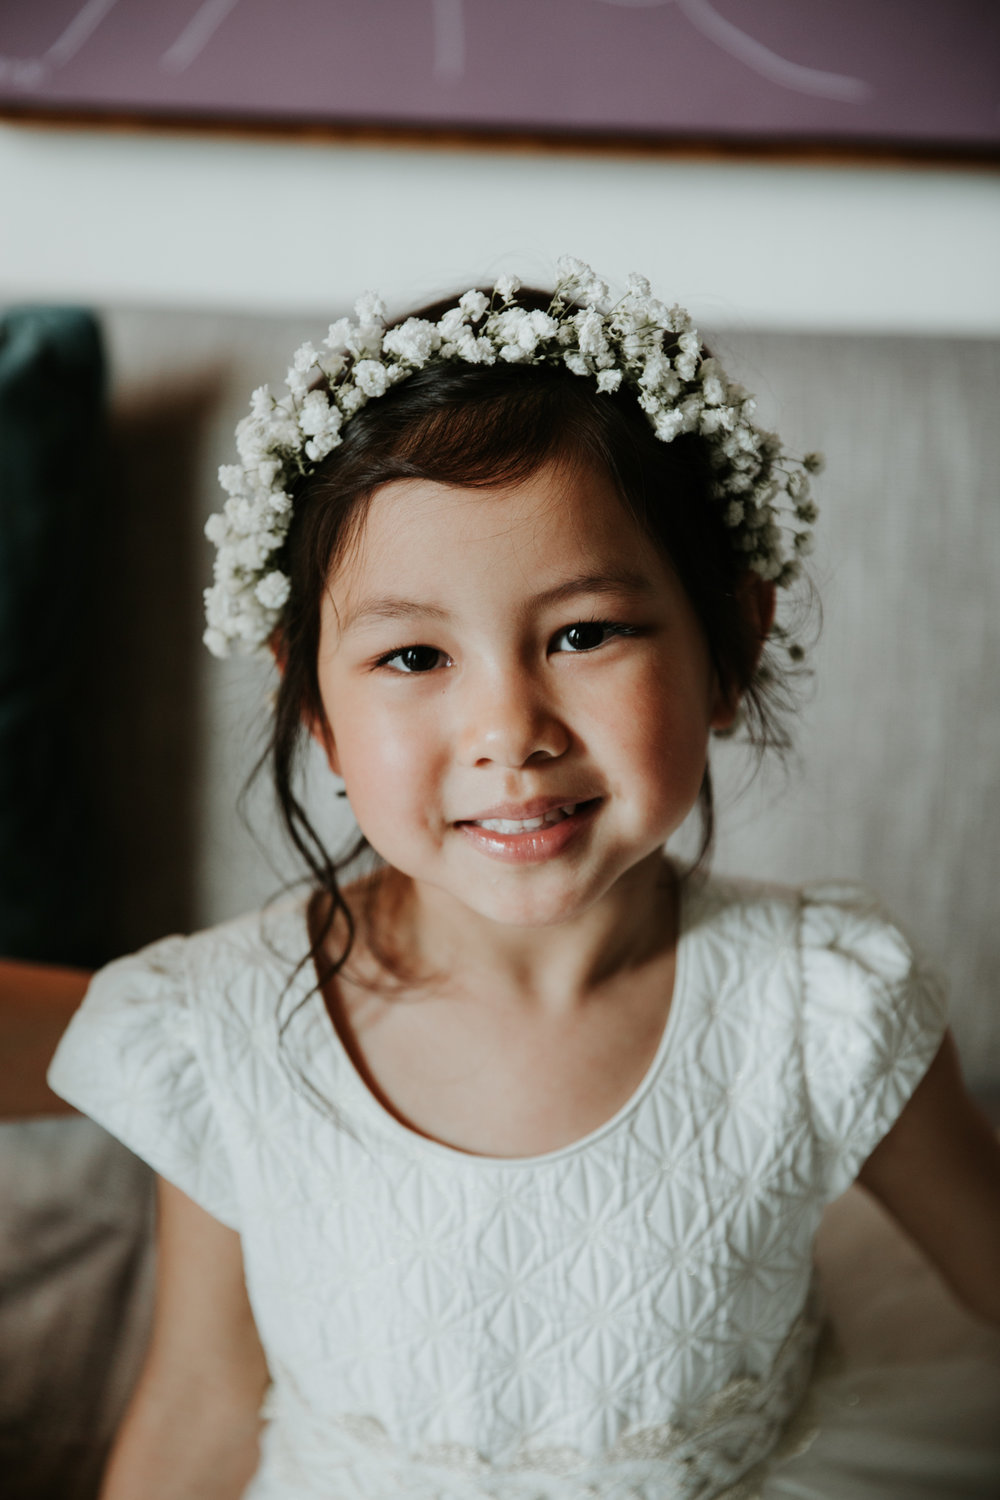 flower girl creative wedding photo